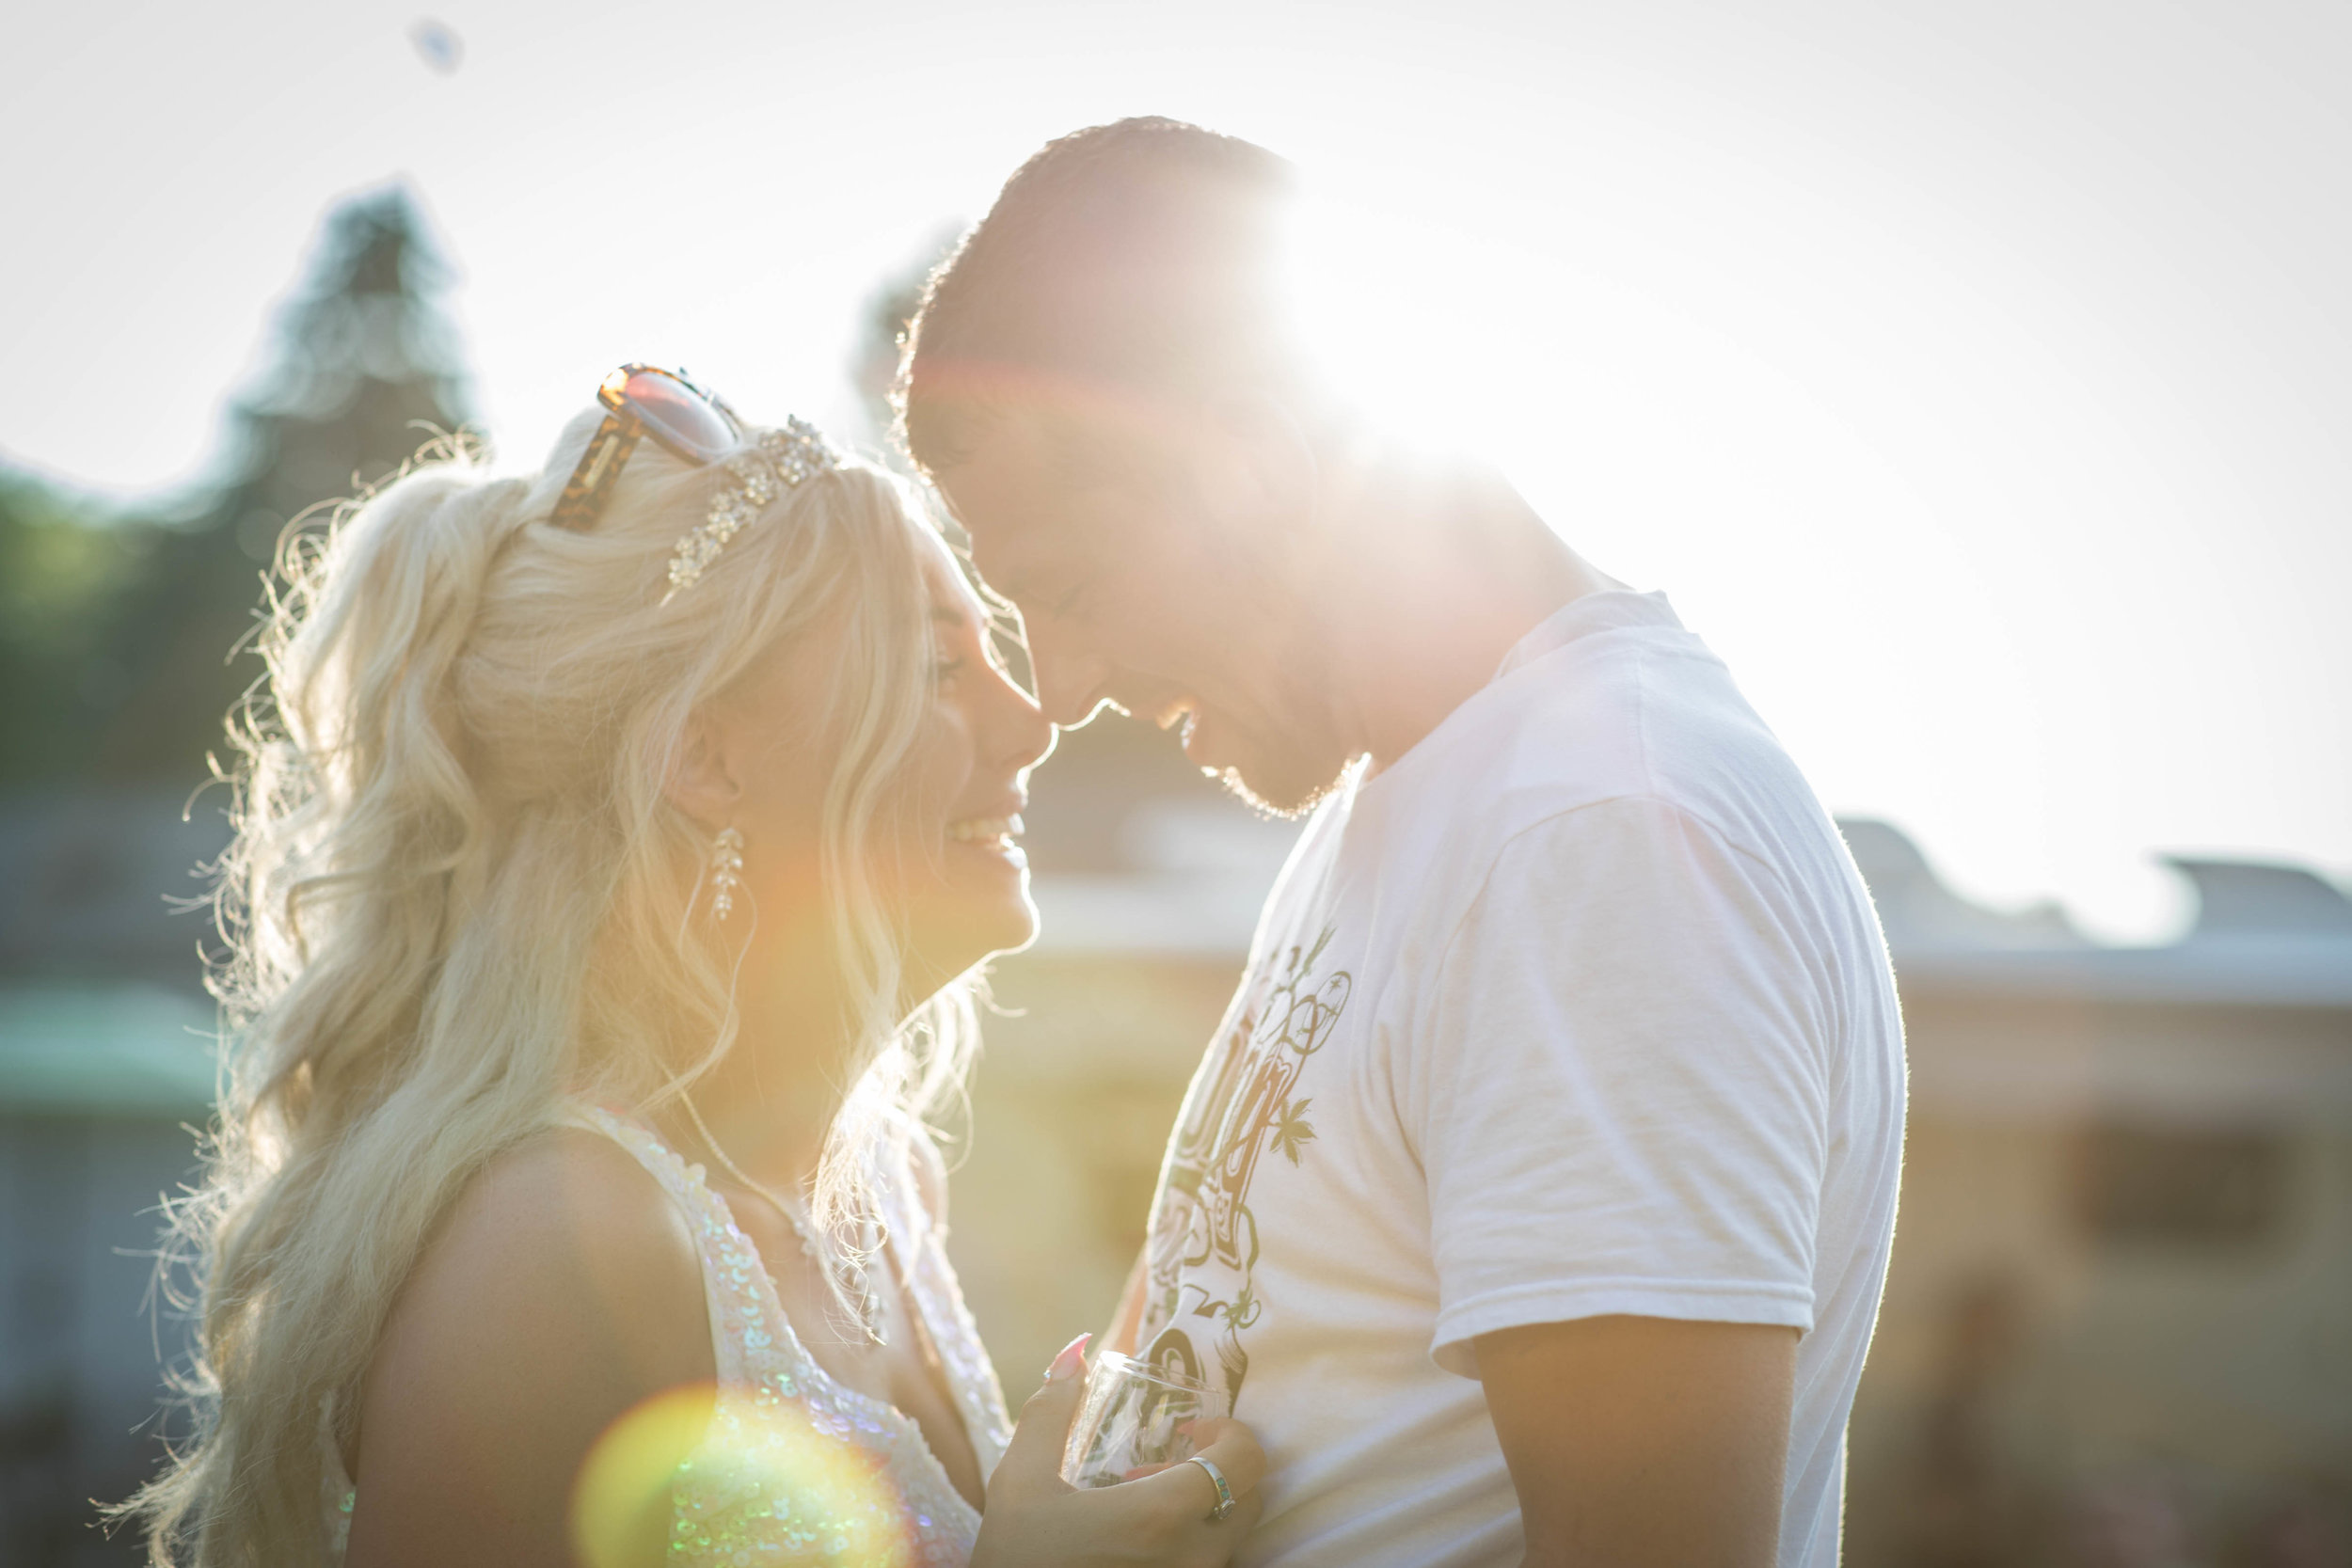 Bride and groom embrace in a setting sun